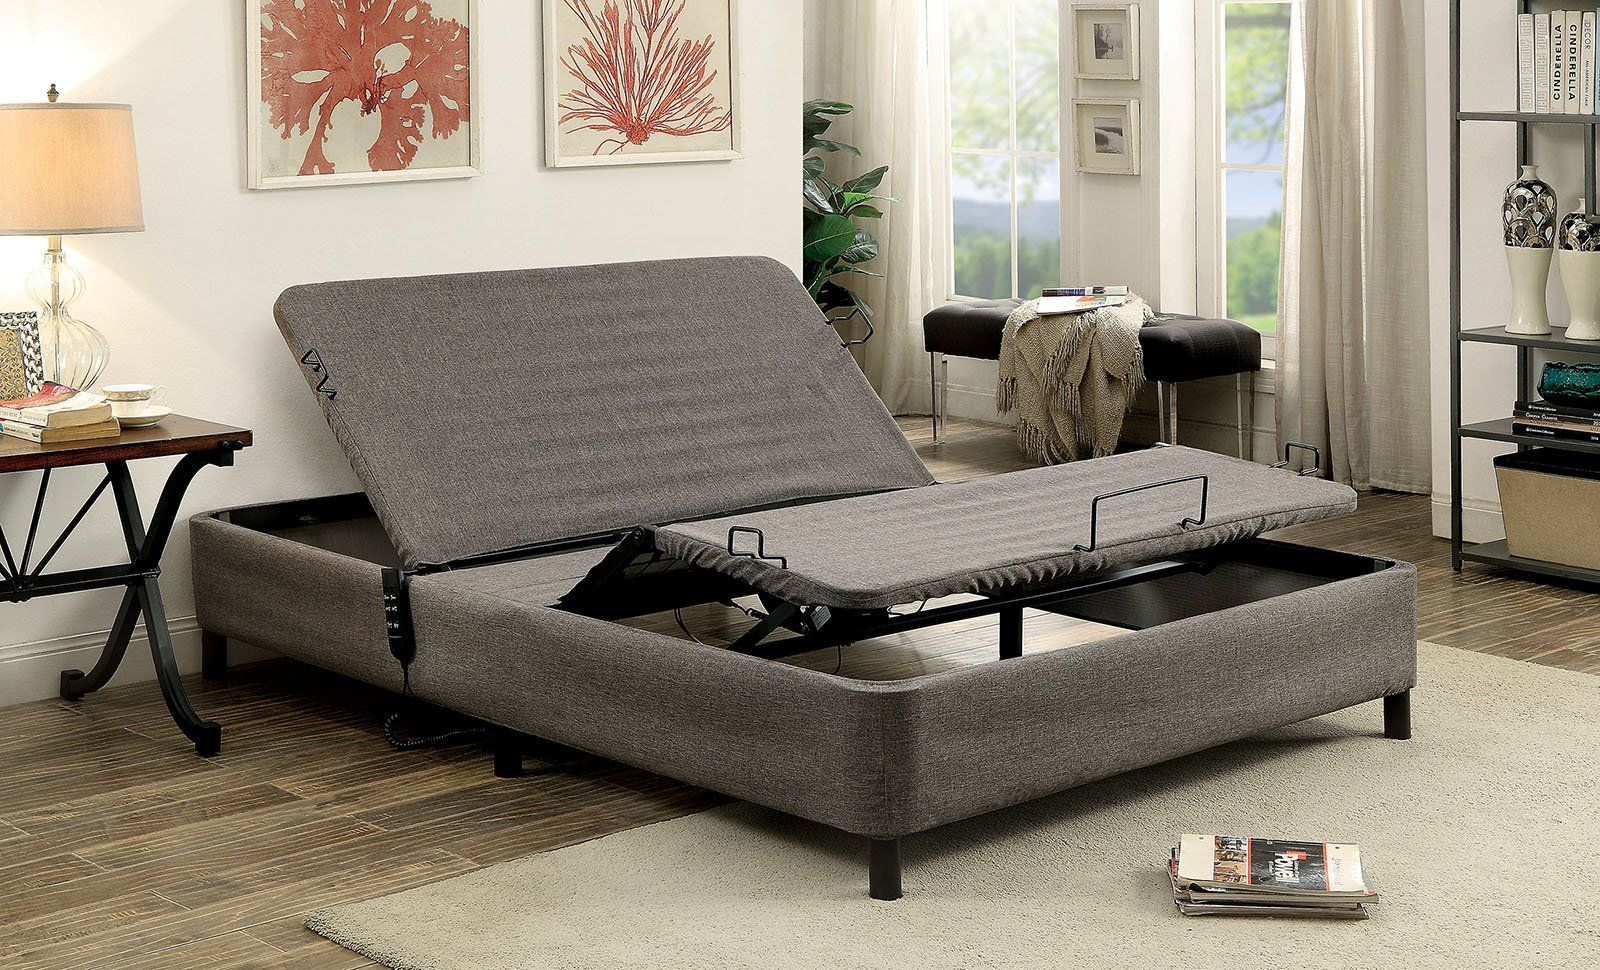 Furniture Of America Mt Frm50 Q Framos Queen Adjustable Bed Frame Adjustable Beds Adjustable Bed Frame Bed Frame